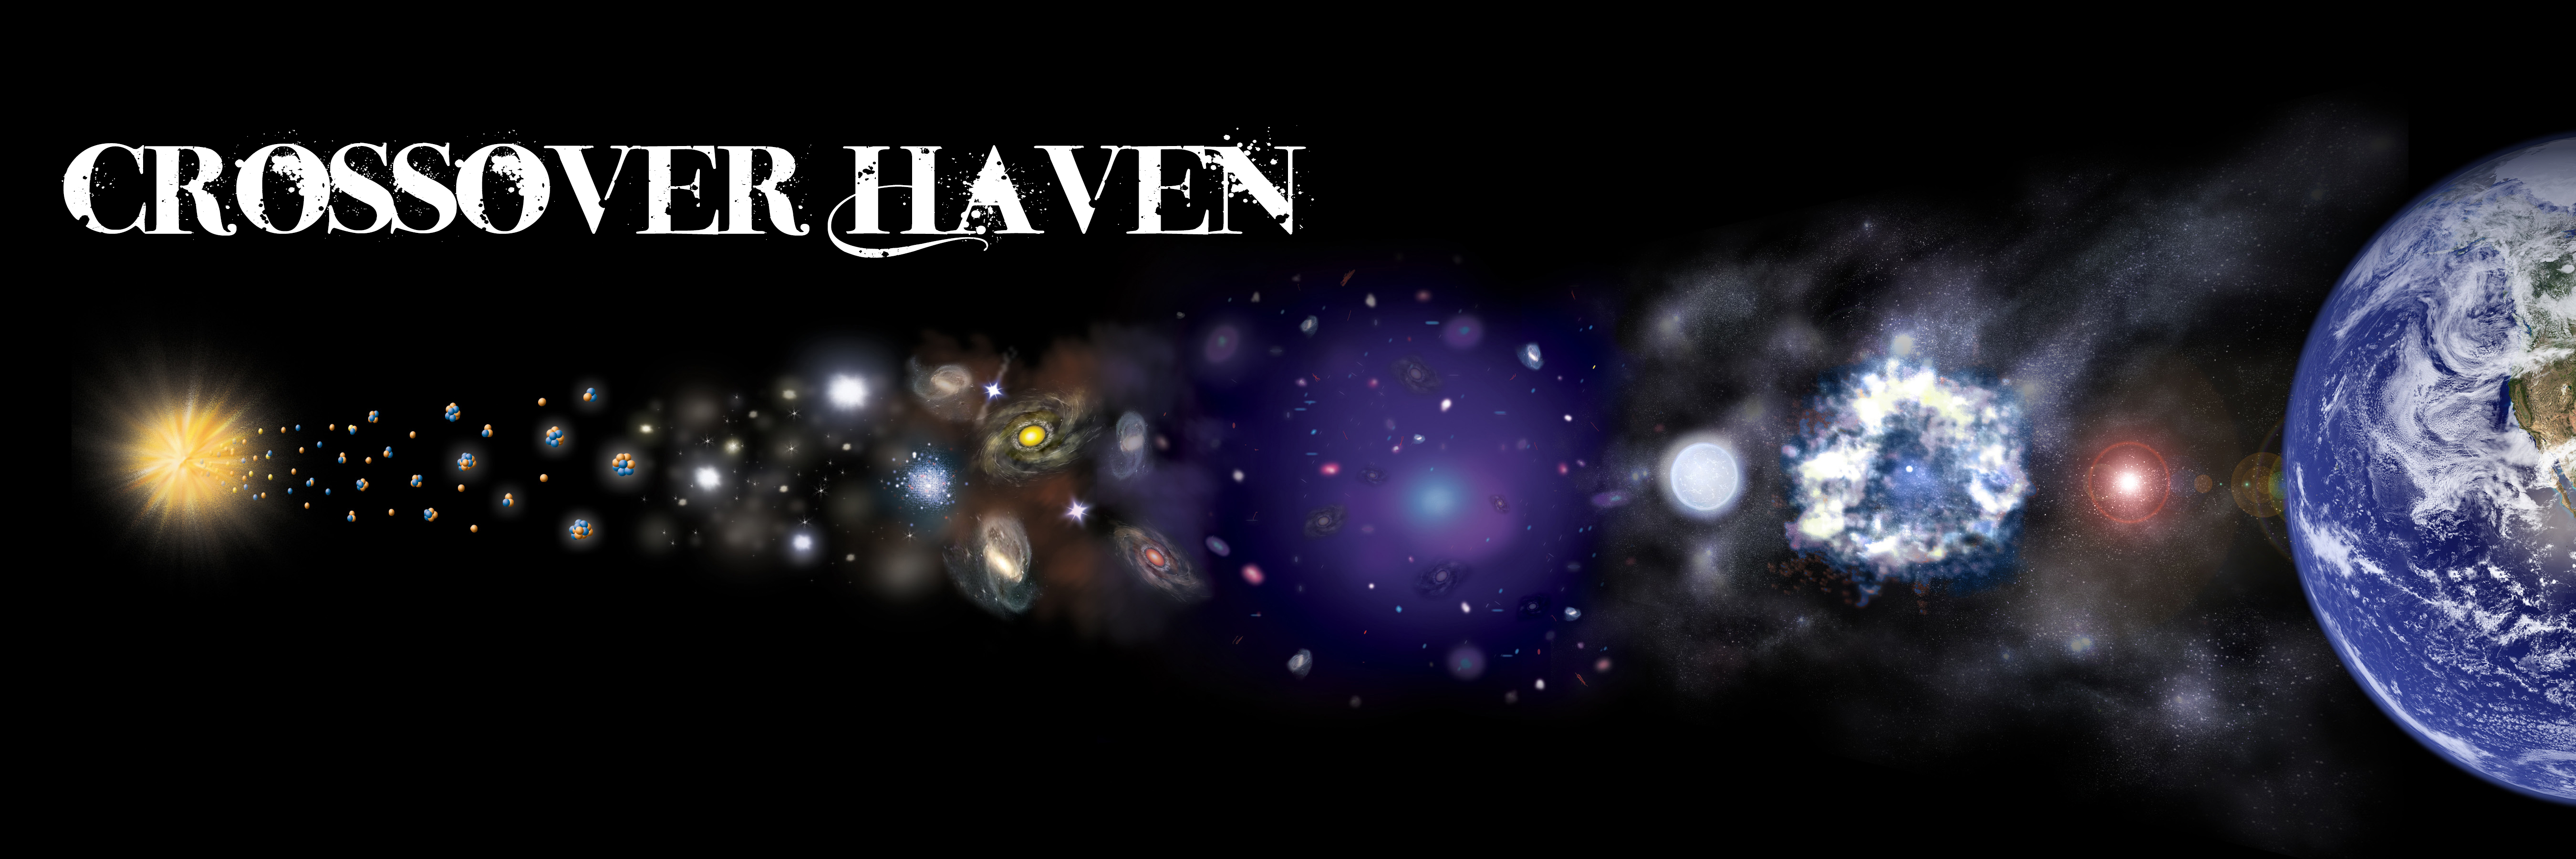 chemical_composition_universe header1